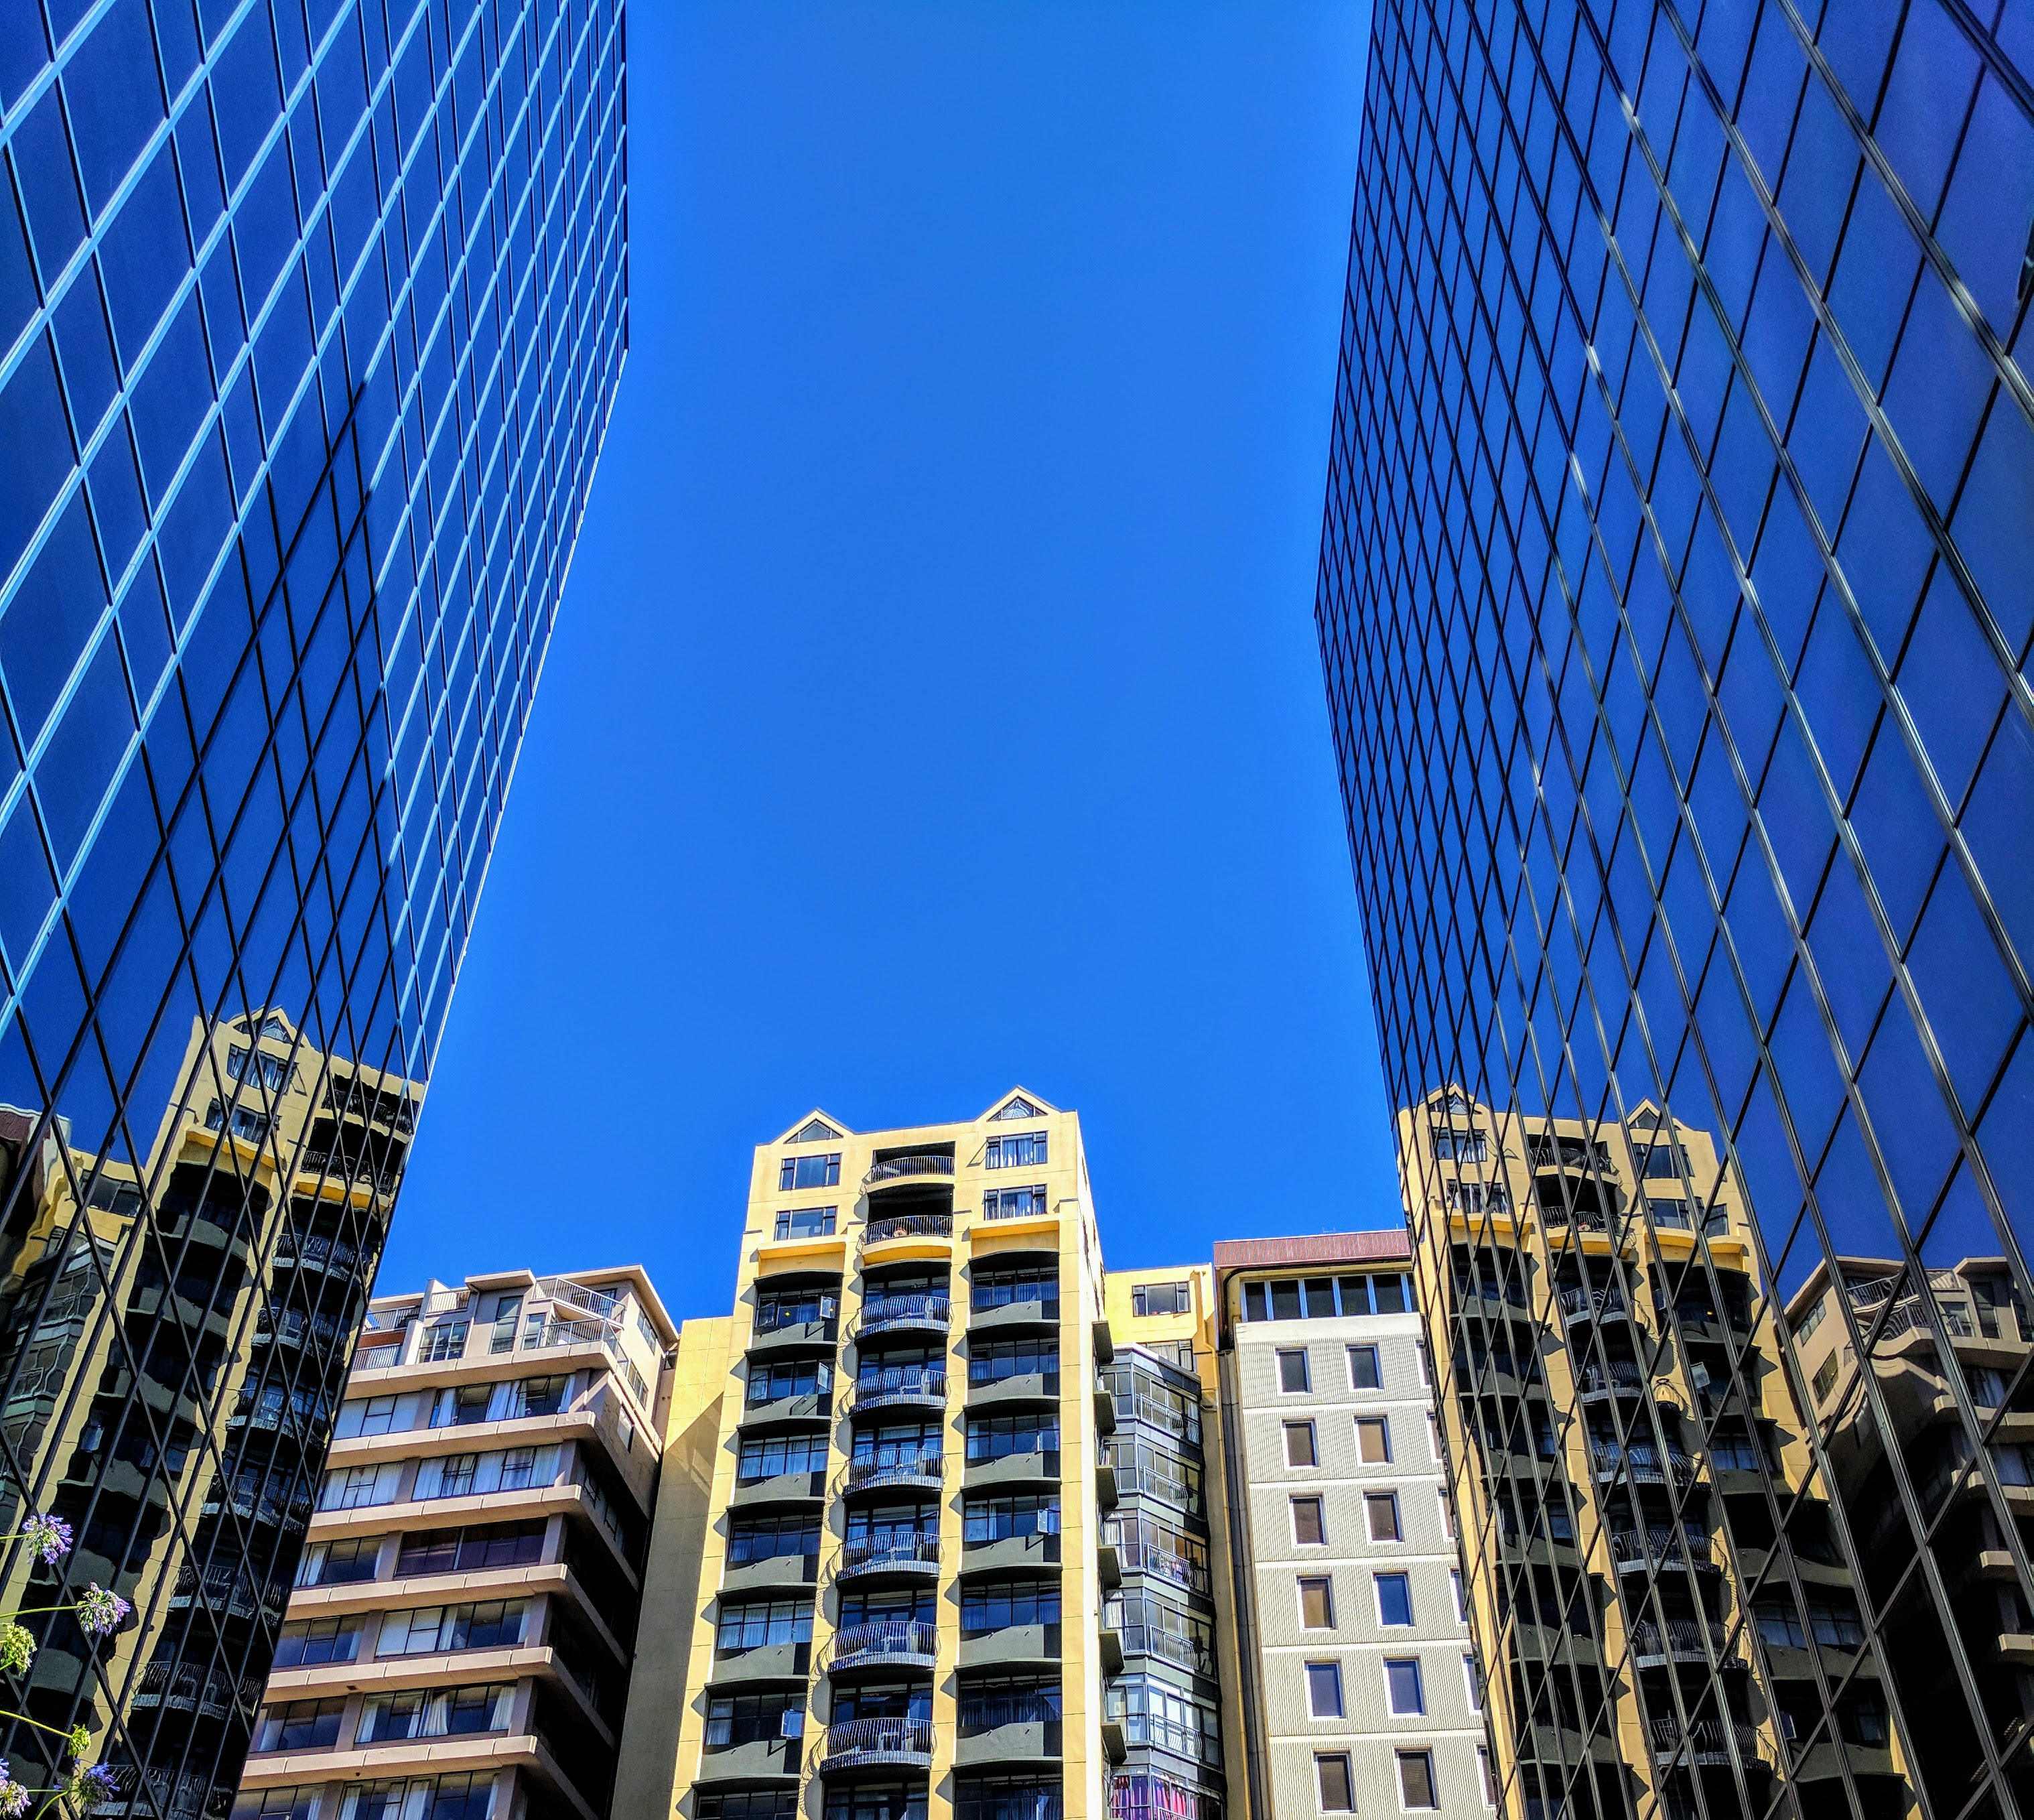 Reflections of CBD and blue sky